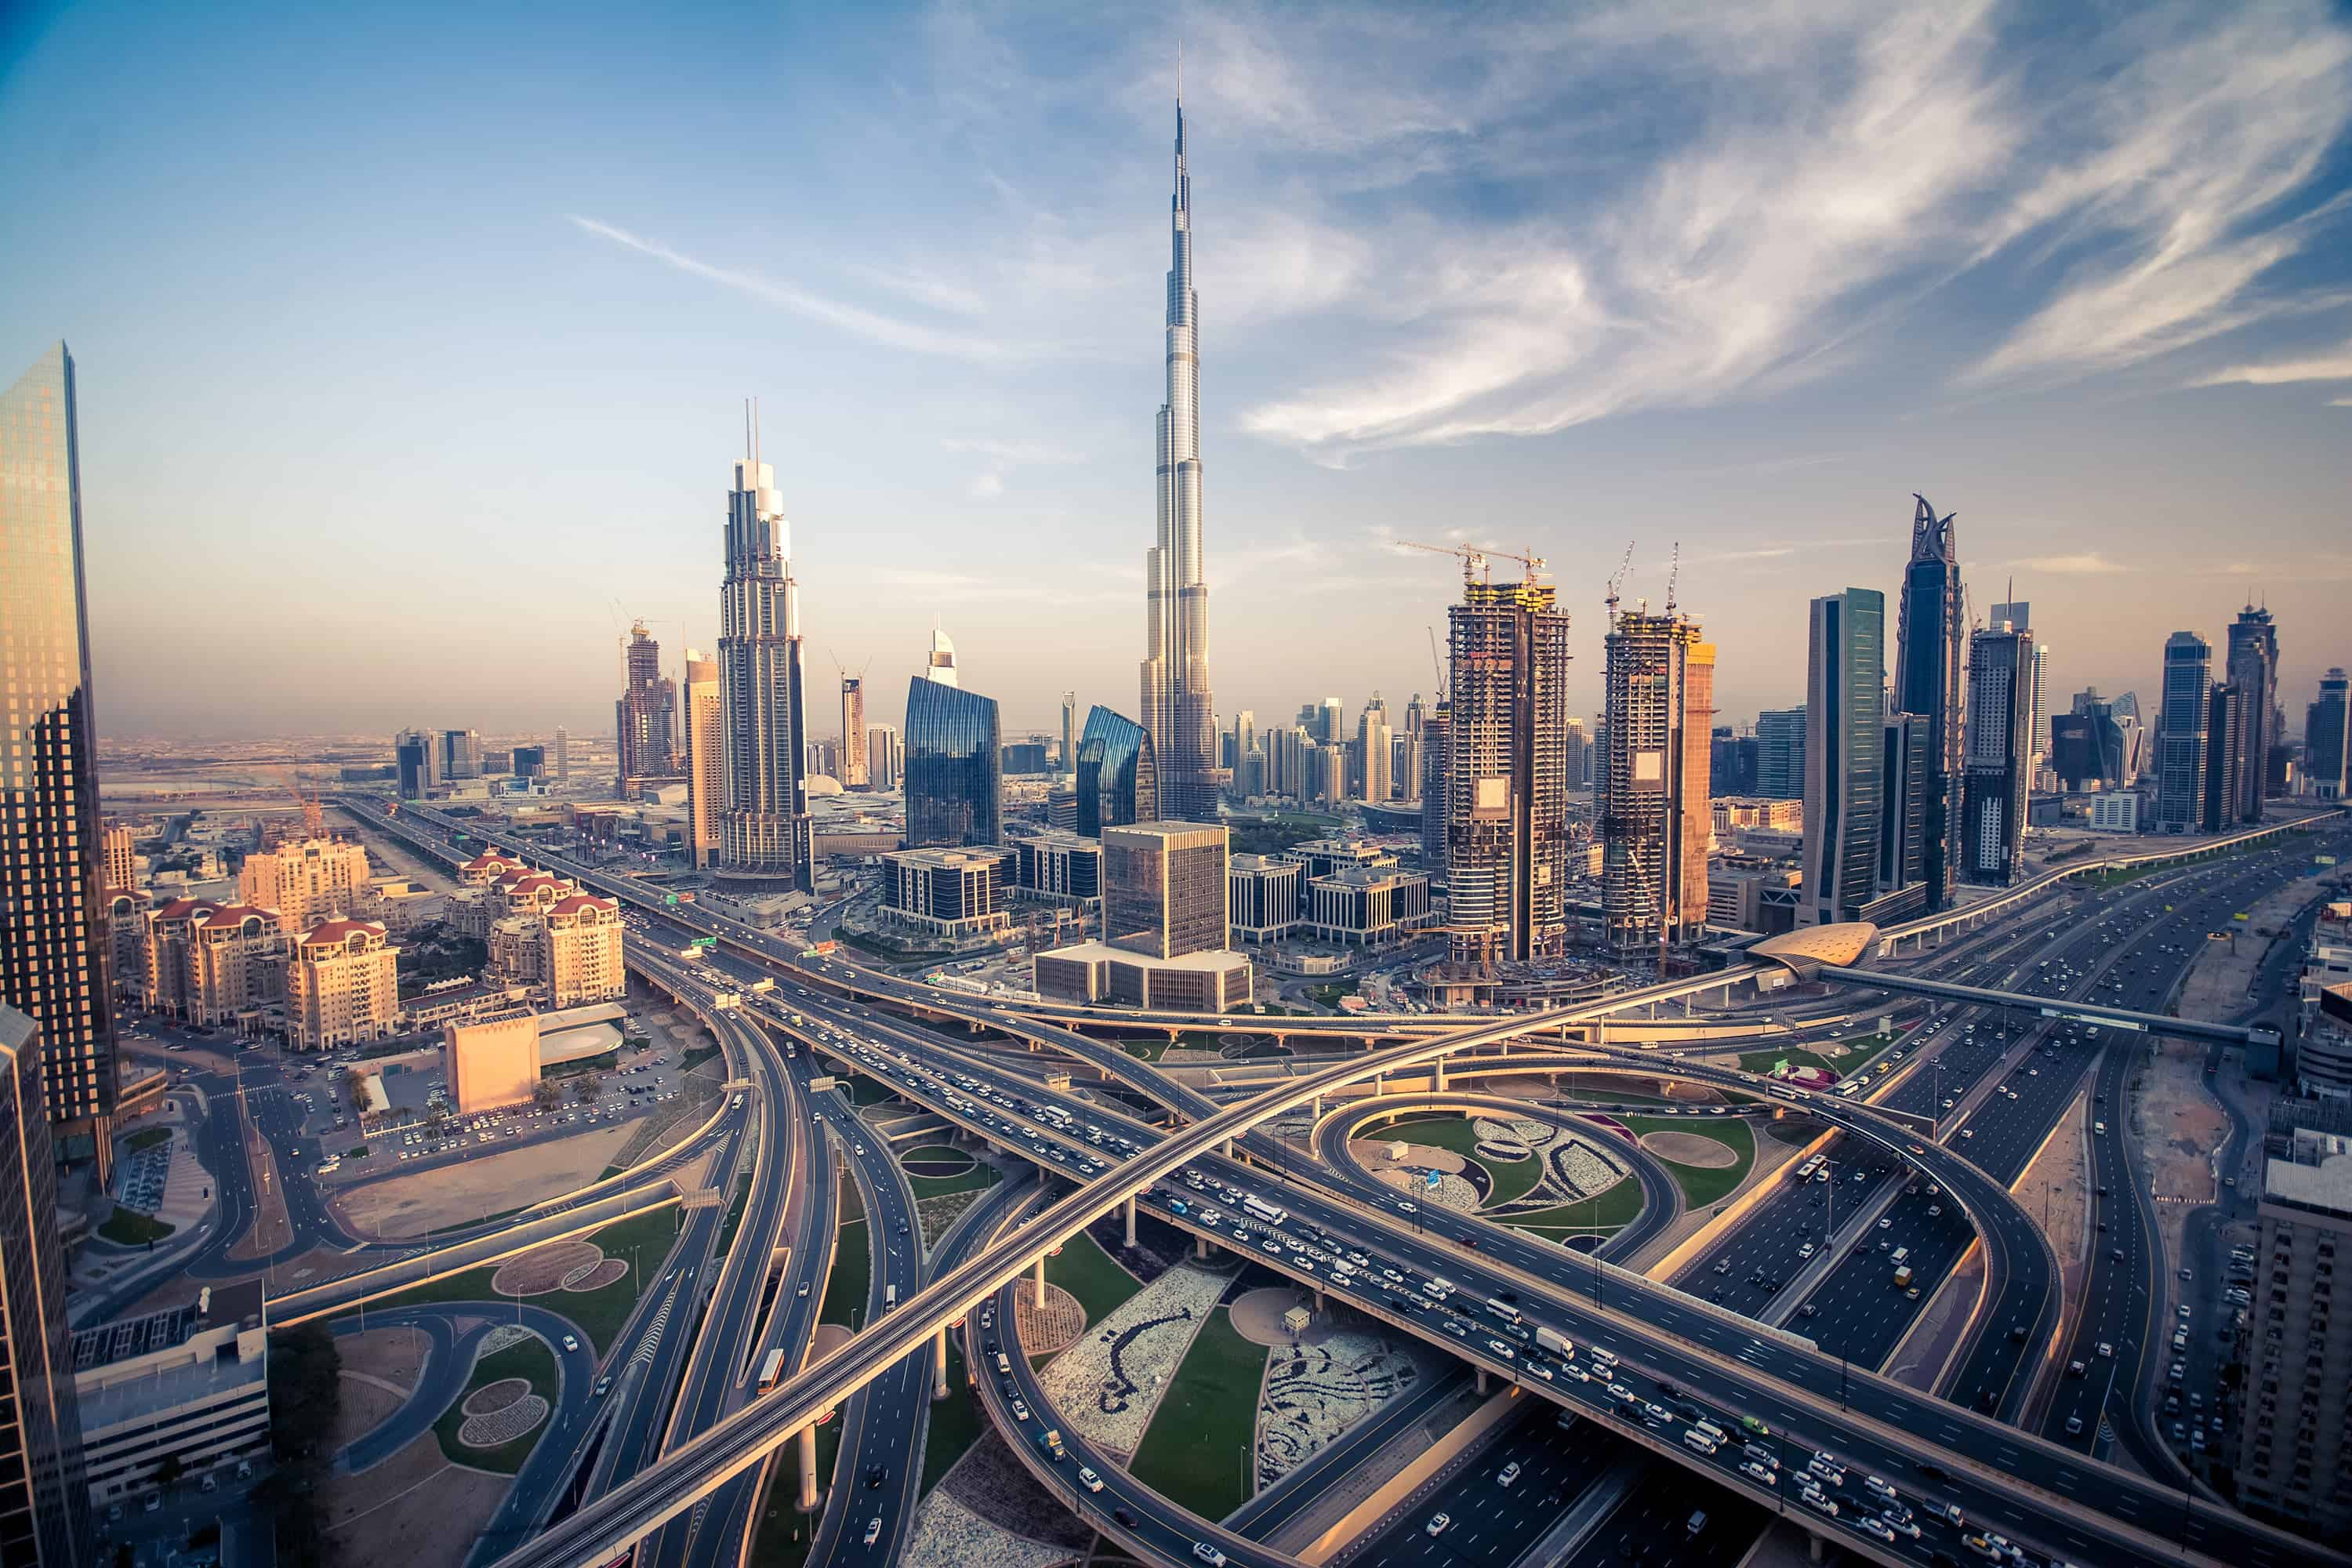 Dubai | The Glitzy Hot Spot